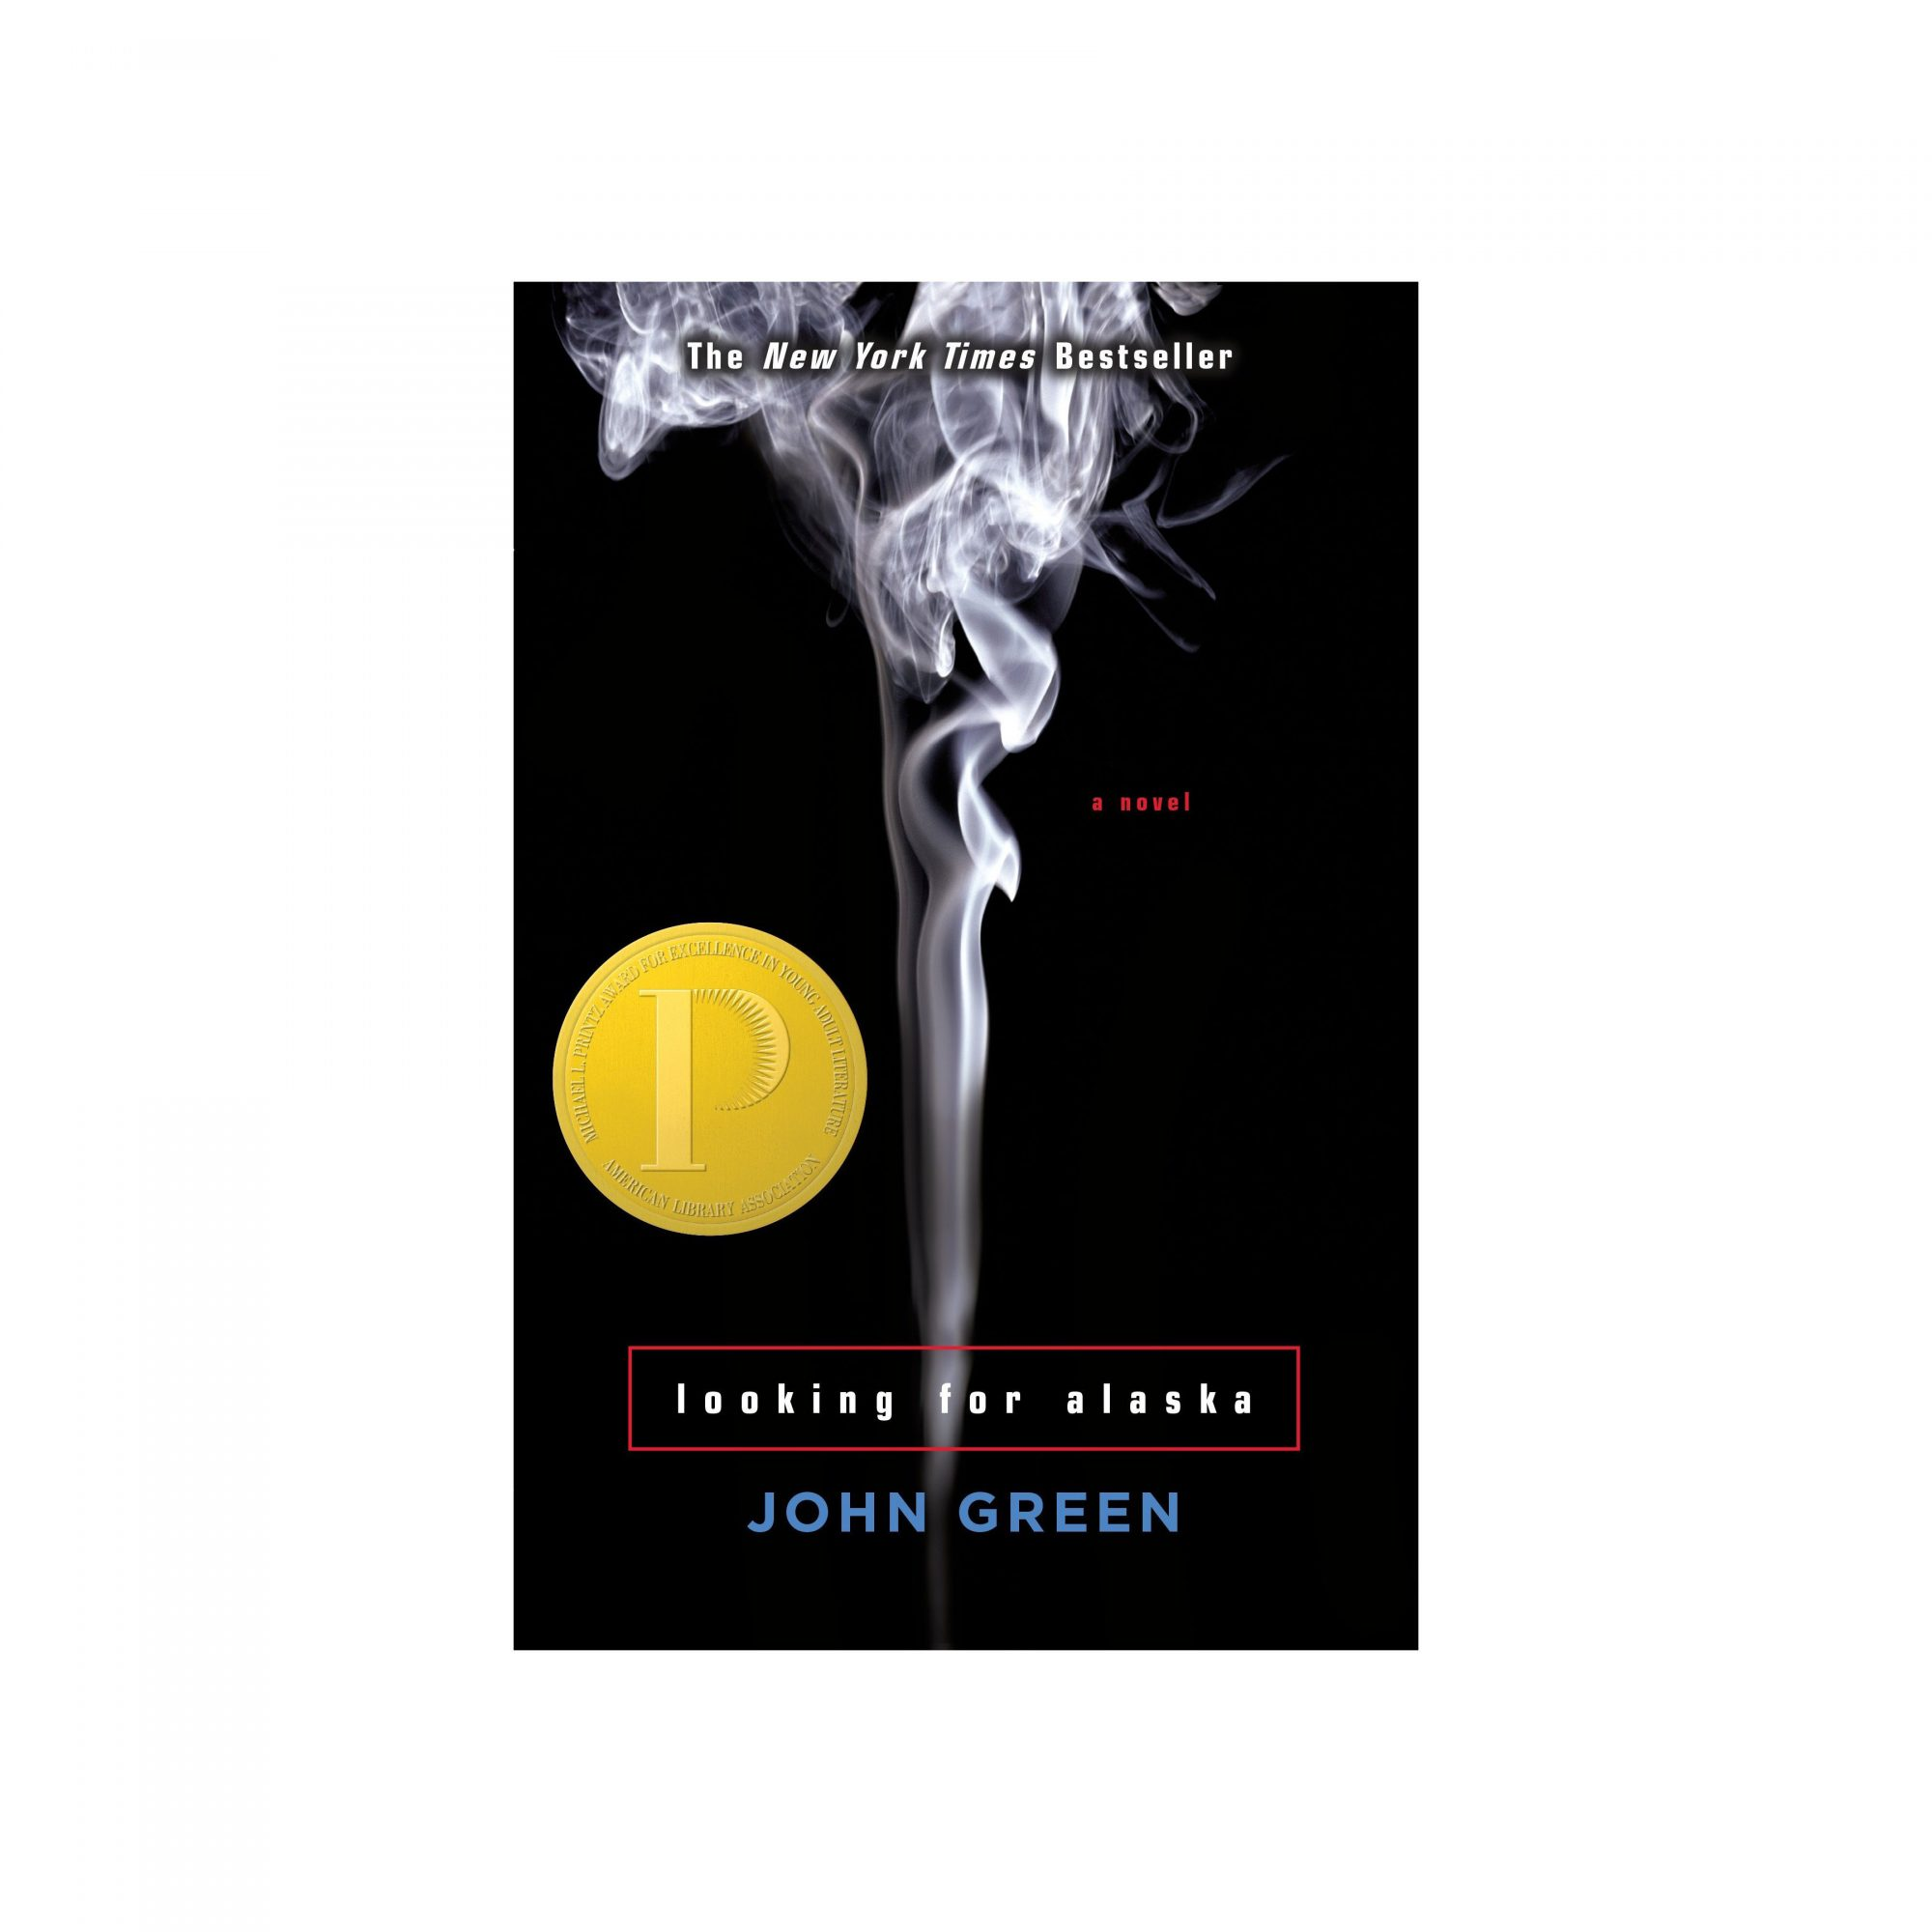 Looking for Alaska, by John Green